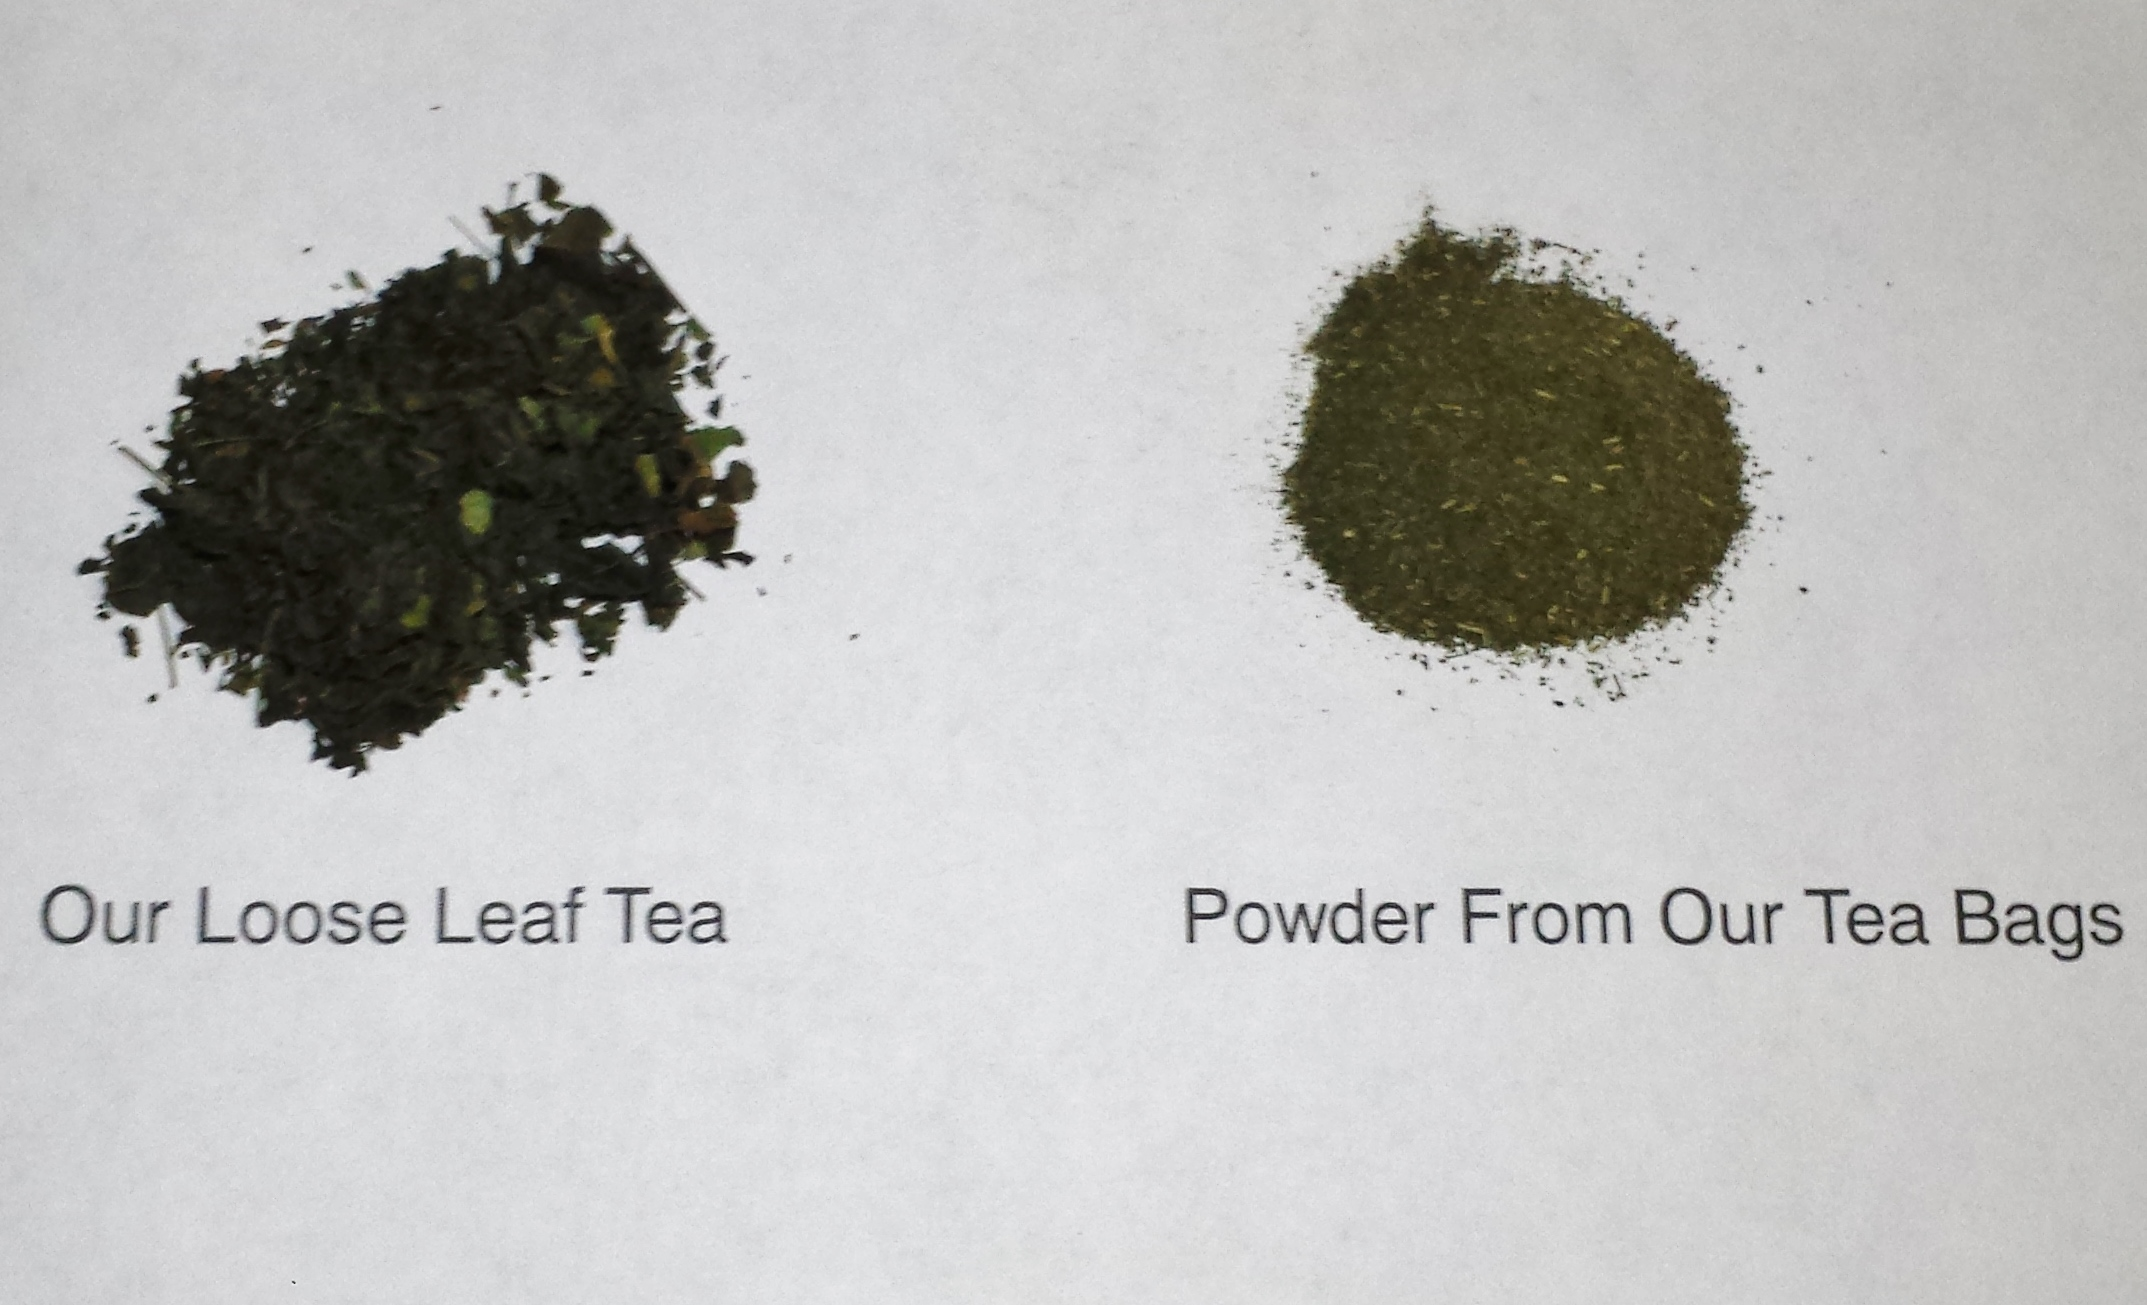 loose-leaf-vs-powder.jpg